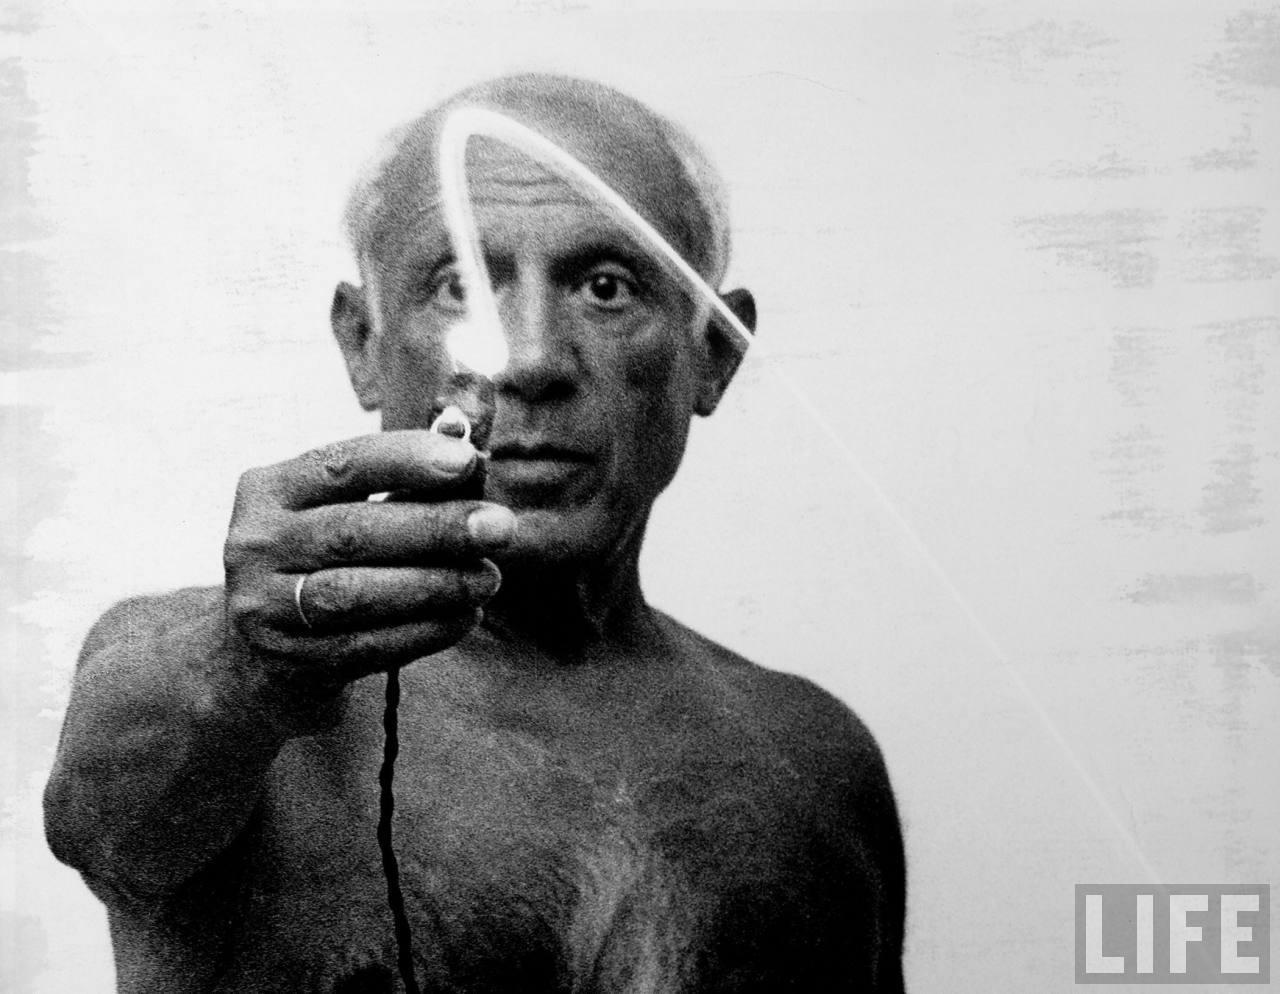 PabloPicasso_Light_Painting_005.jpeg (JPEG-Grafik, 1280 × 994 Pixel) - Skaliert (62%)